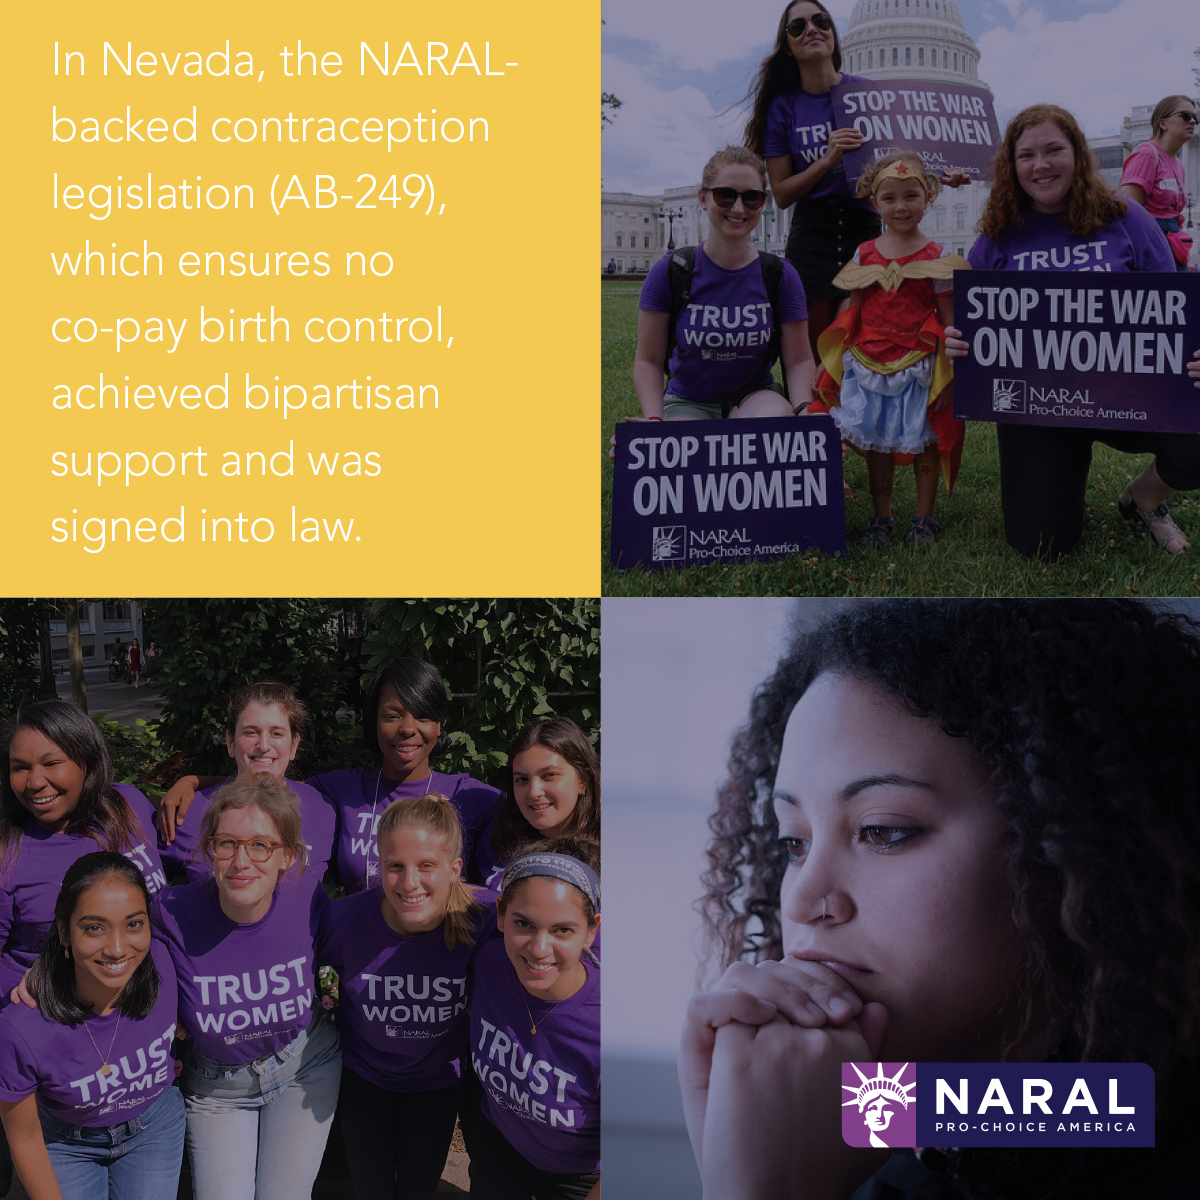 BF_Work_gallery_naral3.jpg